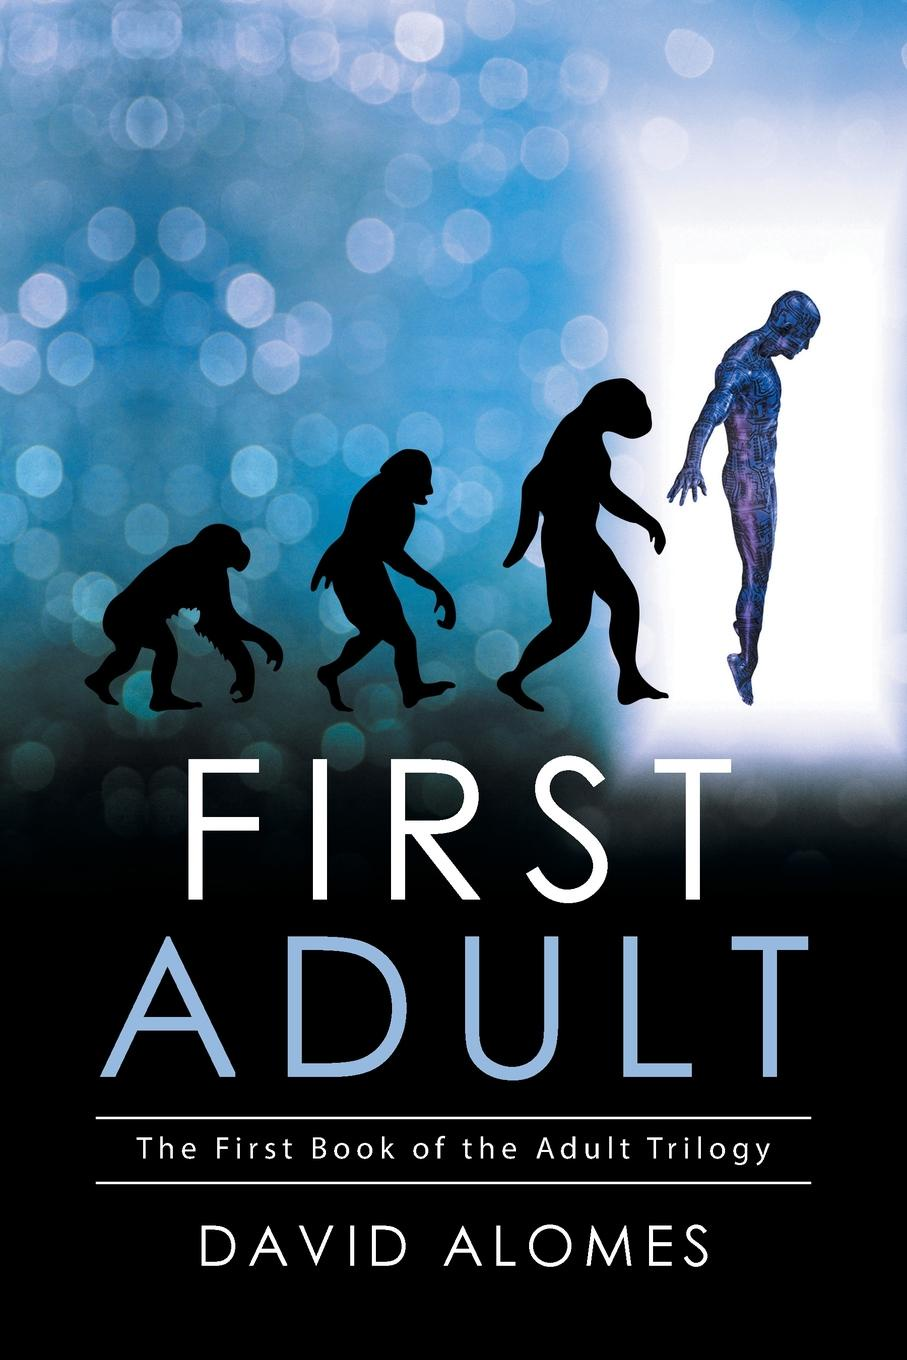 David Alomes First Adult. The First Book of the Adult Trilogy